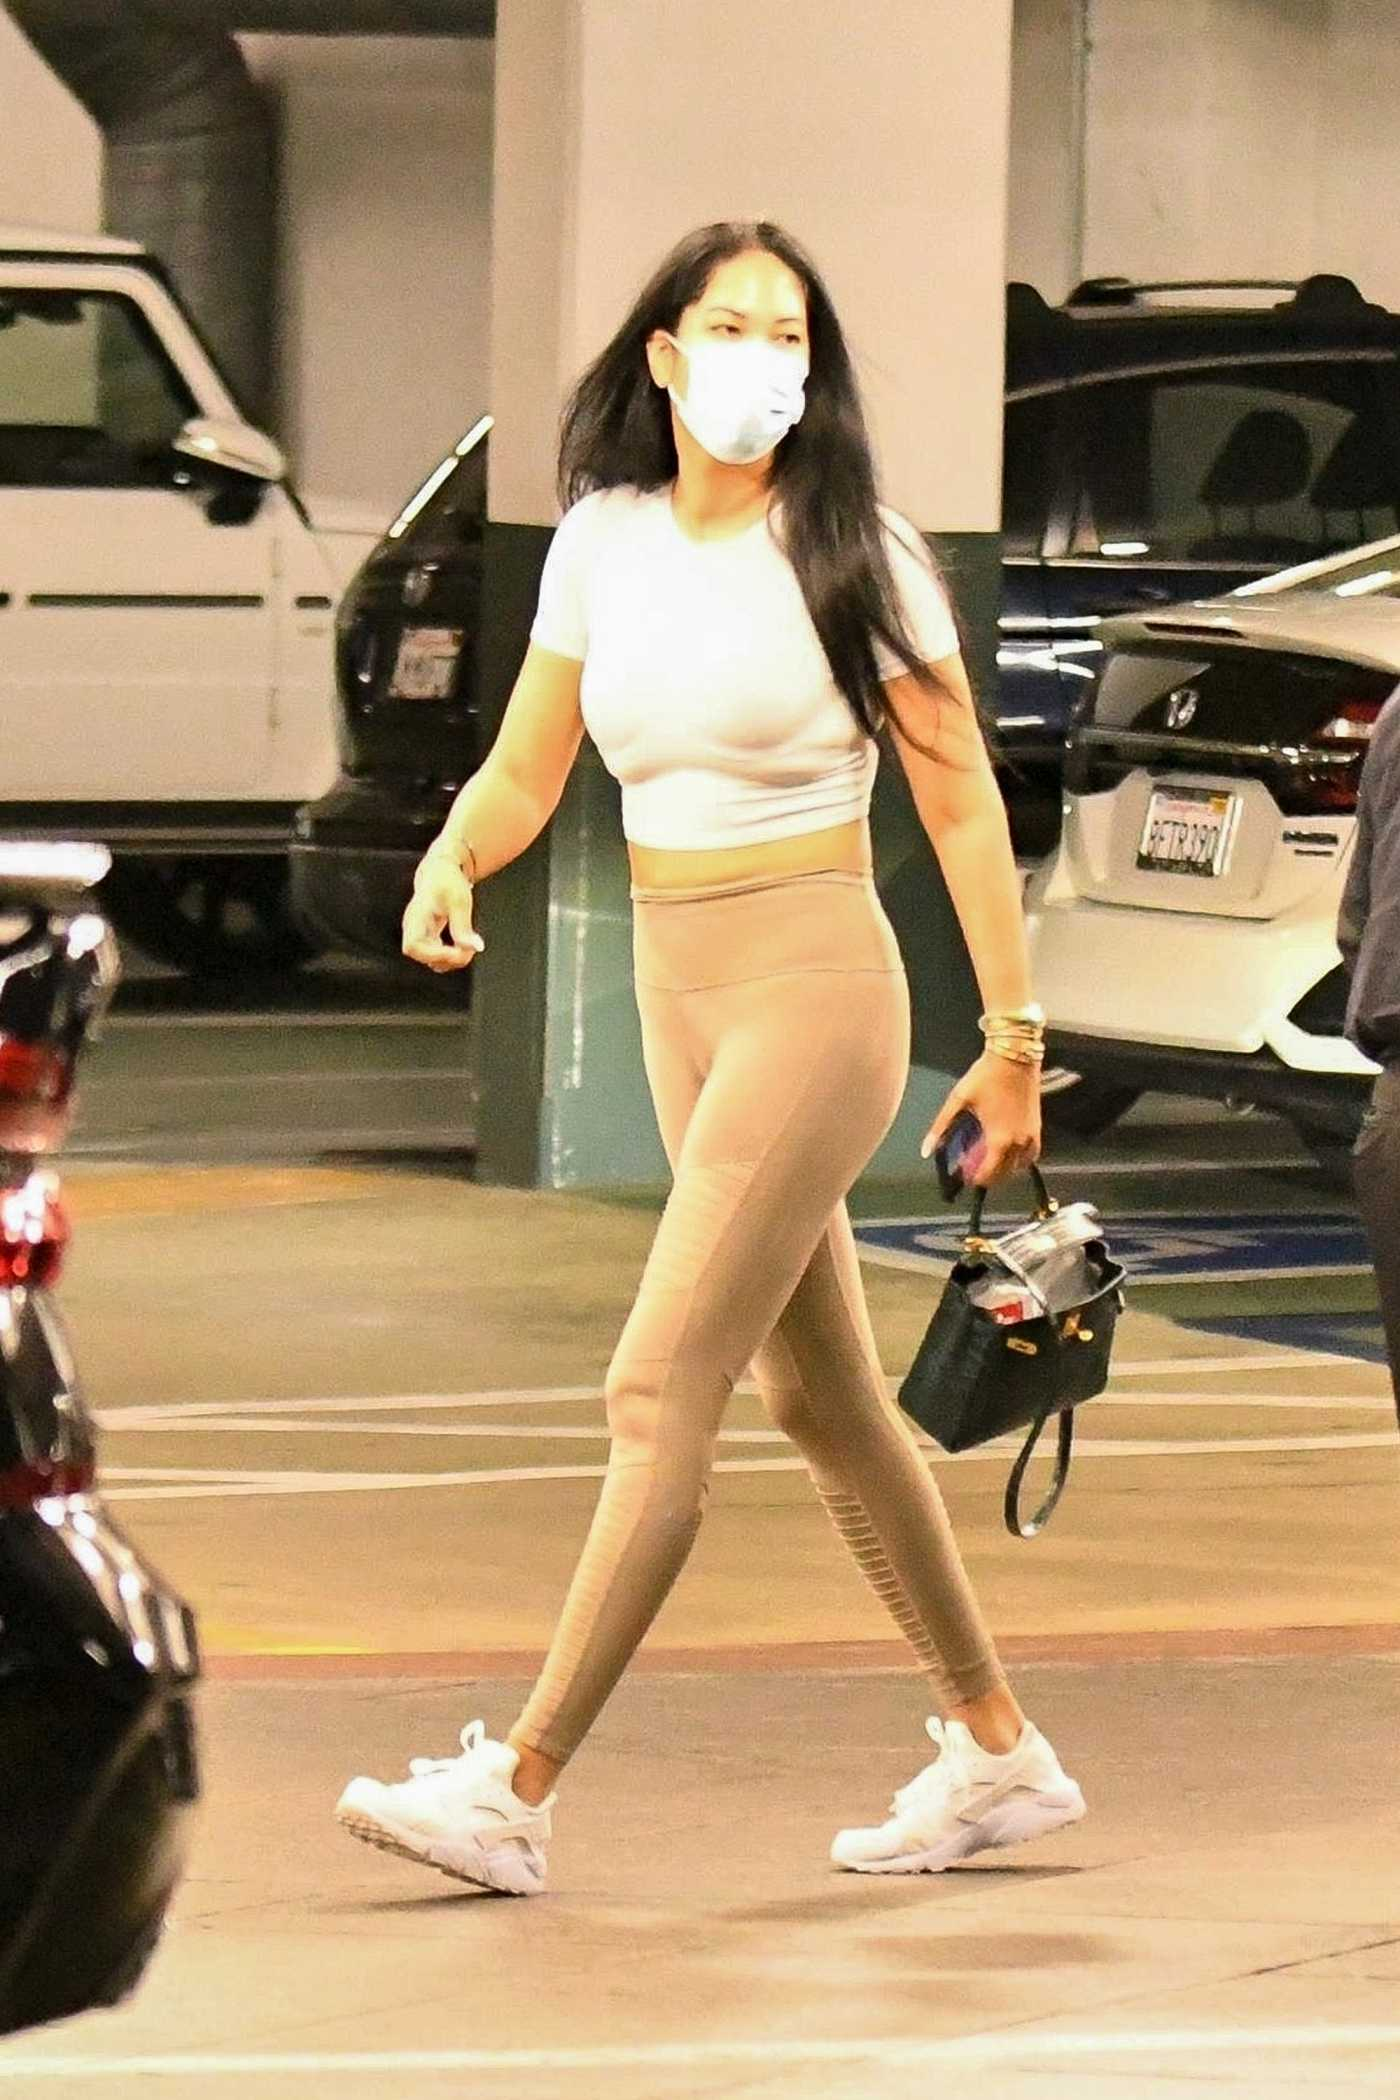 Kimora Lee Simmons in a Protective Mask Visits a Dentist Office on Thanksgiving in Los Angeles 11/26/2020